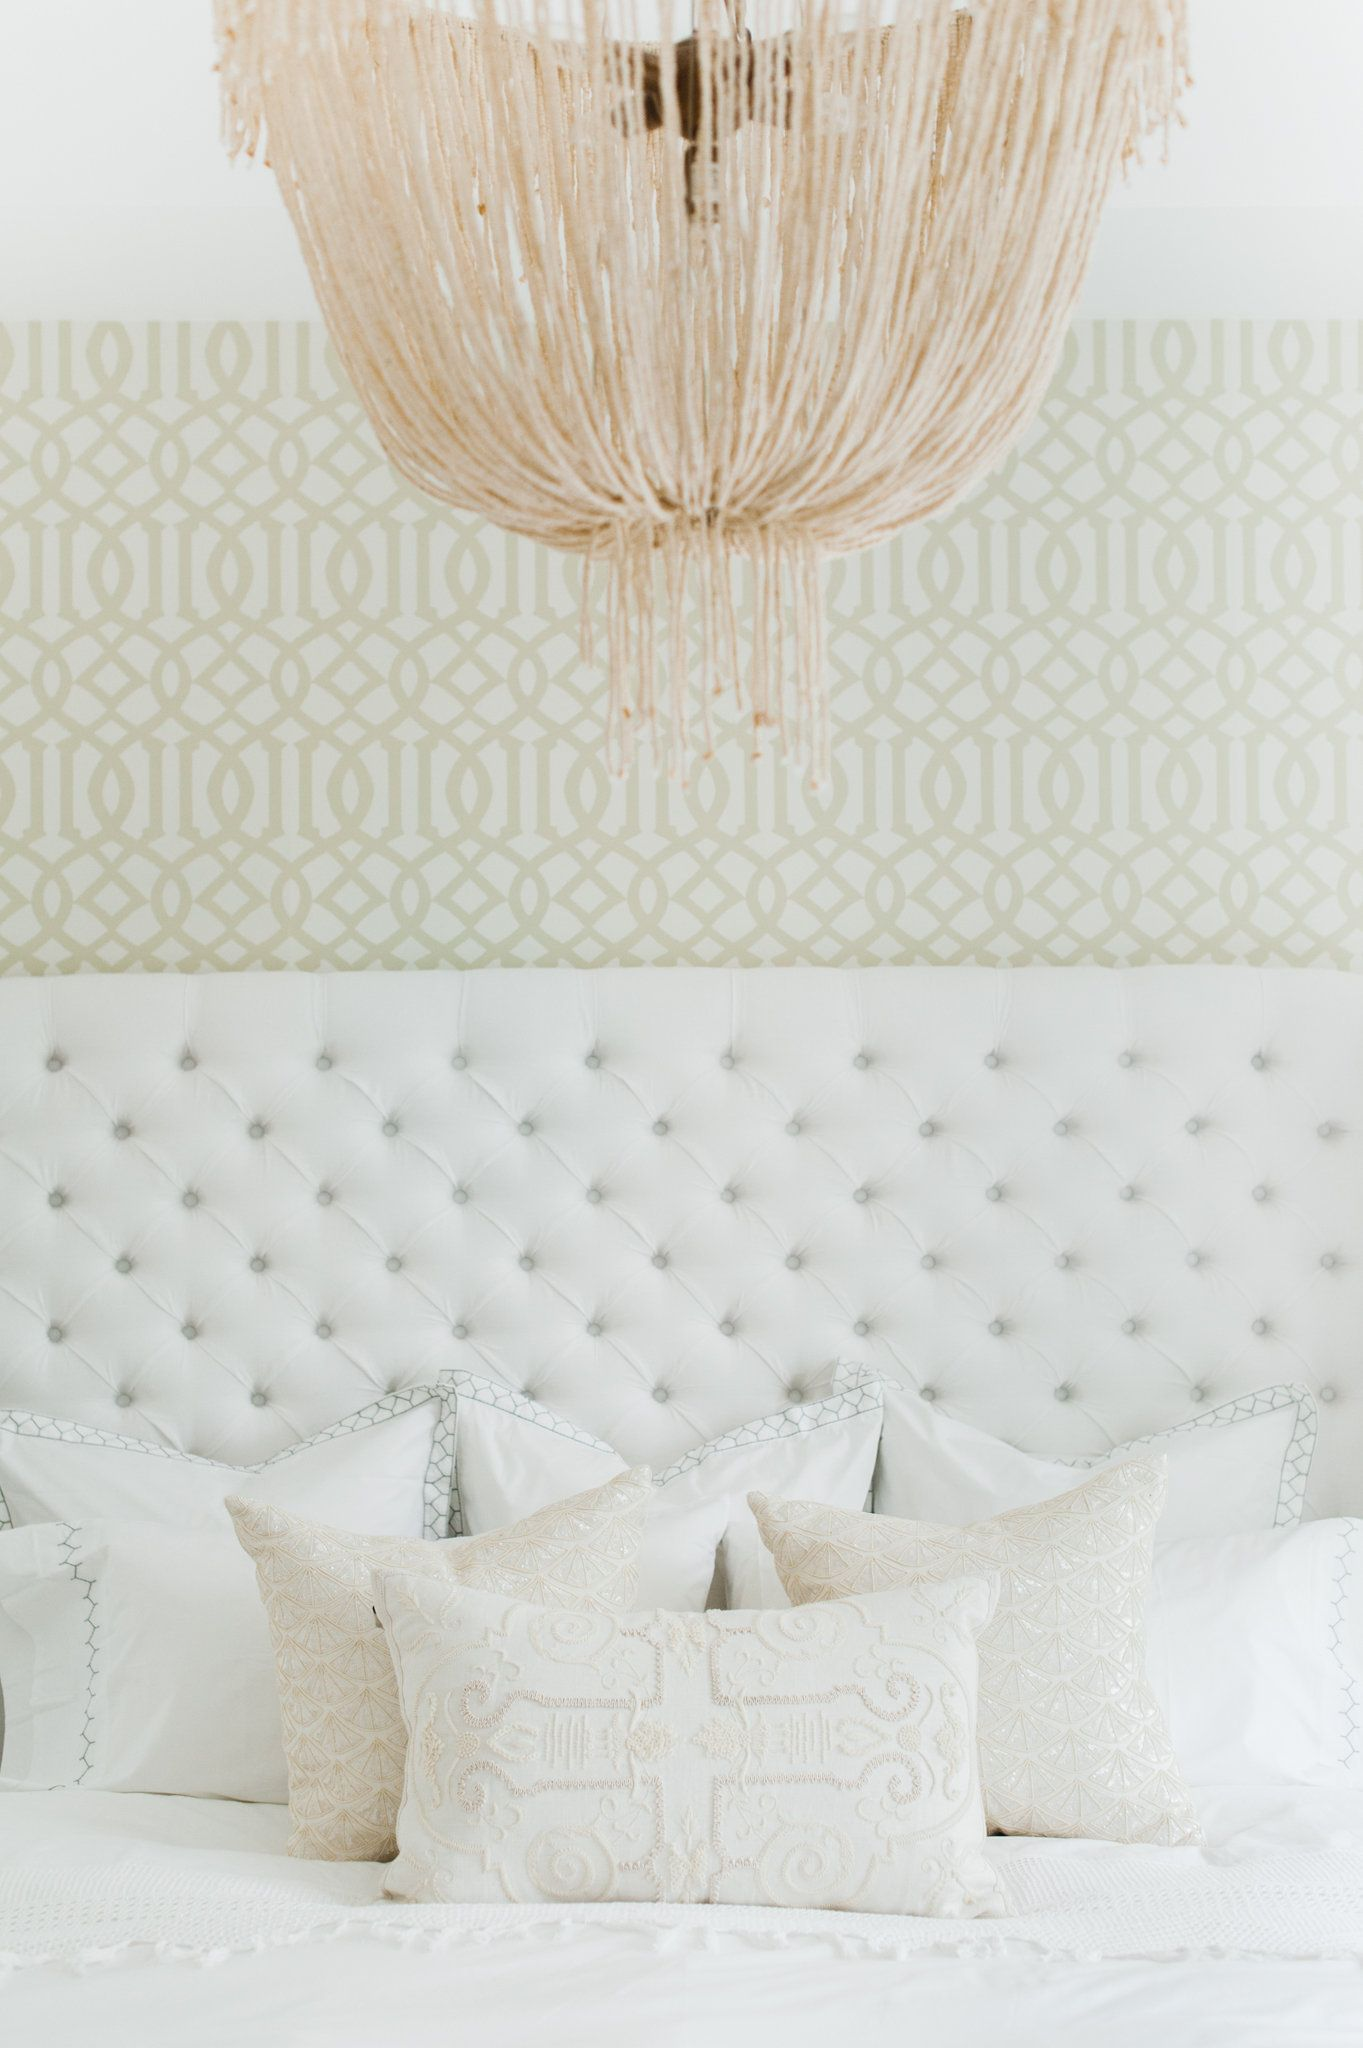 Master bedroom dimensions  Our Bedroom Reveal  MH HOME  Pinterest  Bedrooms Master bedroom